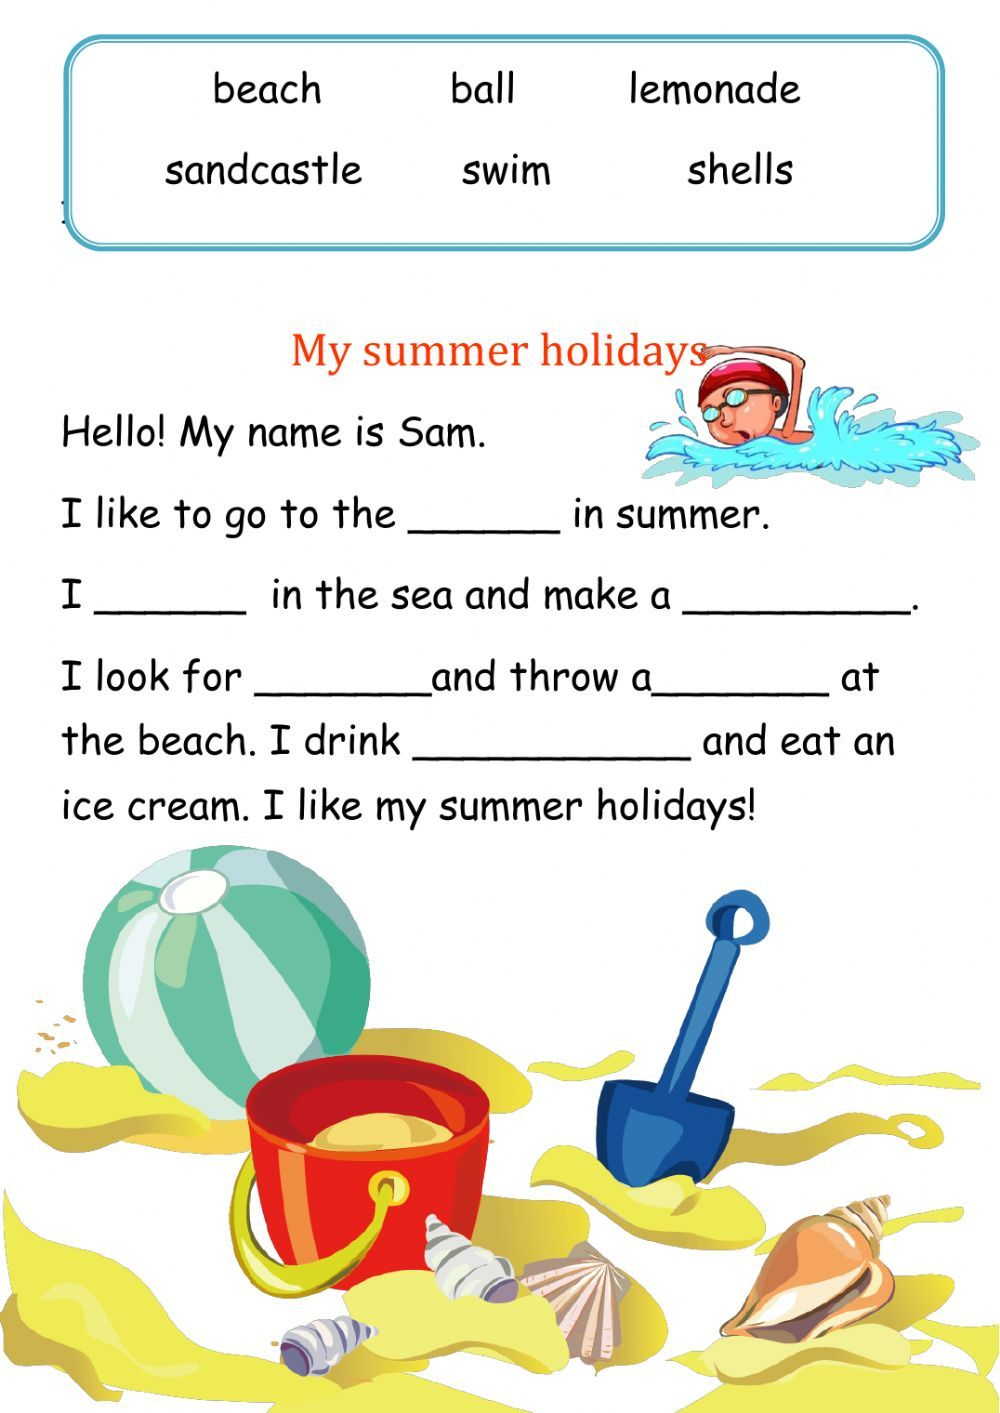 medium resolution of Reading comprehension online activity for Grade 2. You can do the exercises  online or dow…   Reading comprehension